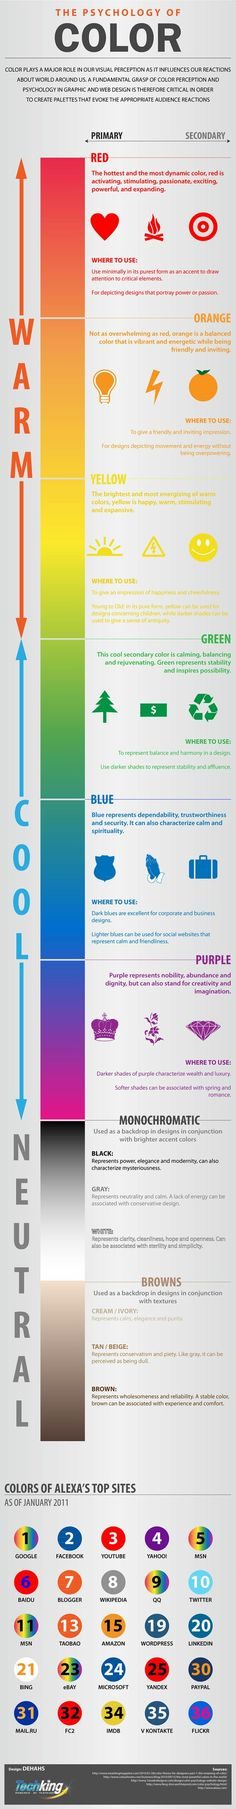 The psychology of color...